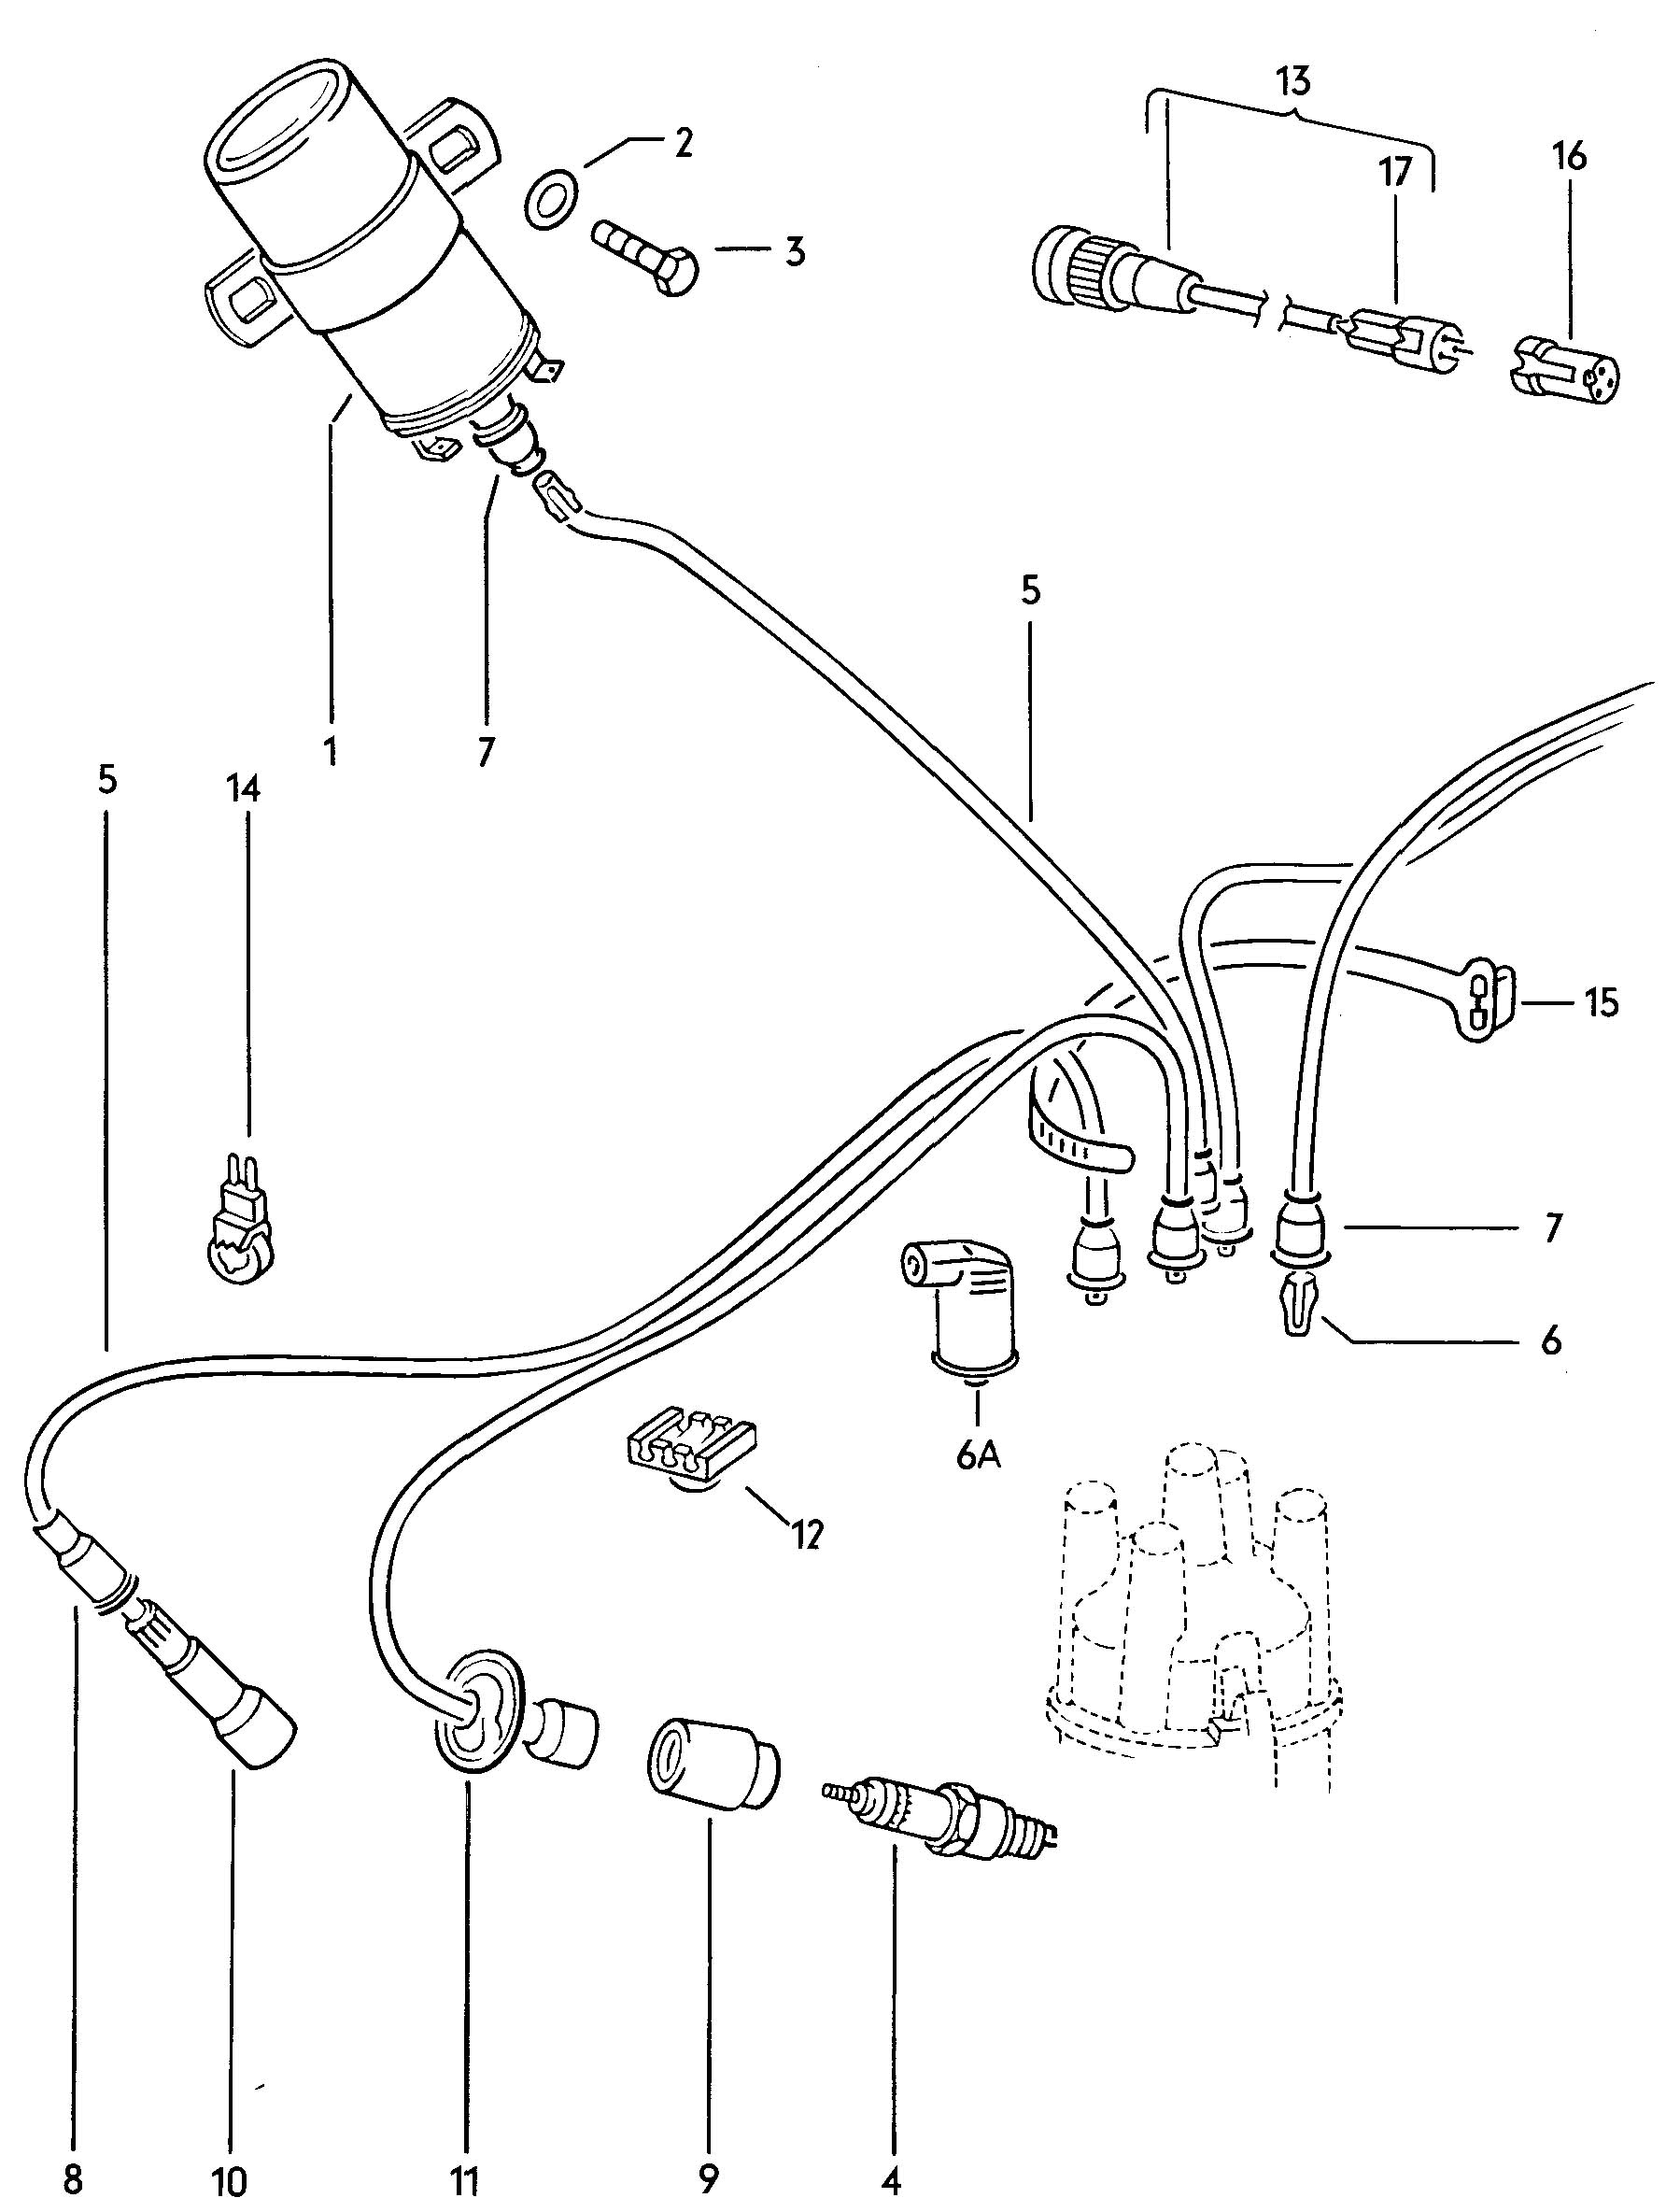 Pontiac Montana Front Suspension Diagram also Gallery 3395 9 likewise 1974 VW Beetle Engine Diagram additionally Viewtopic together with Oldart006. on 1974 super beetle wiring diagram